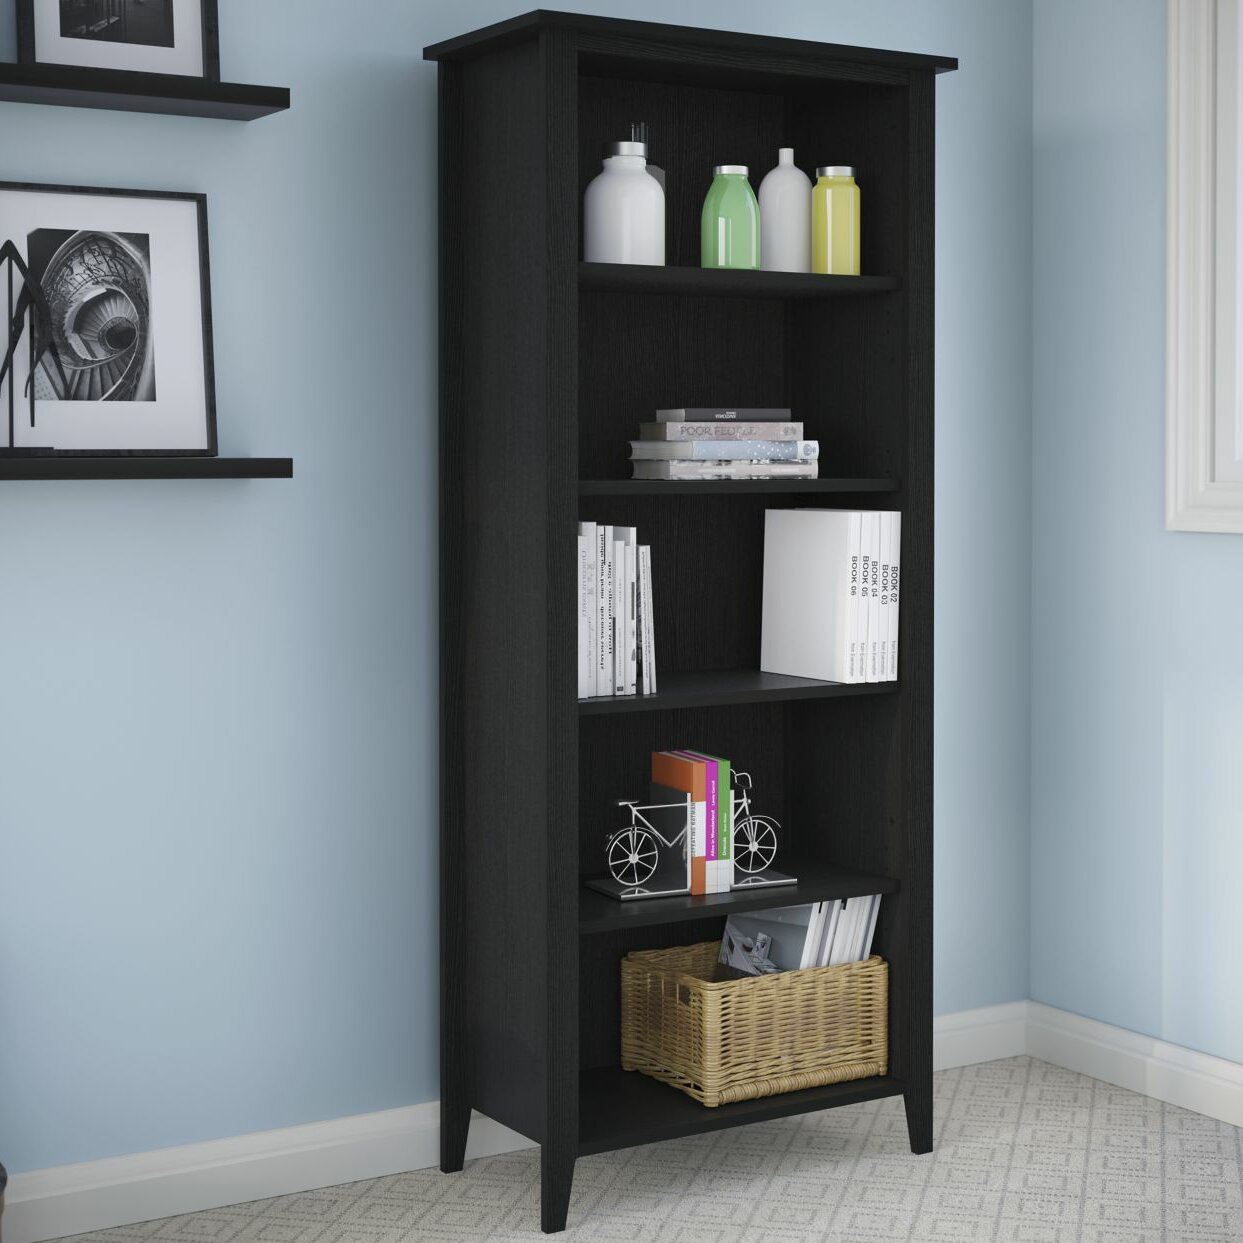 Kathy ireland home by bush furniture connecticut 5 shelf standard bookcase reviews wayfair